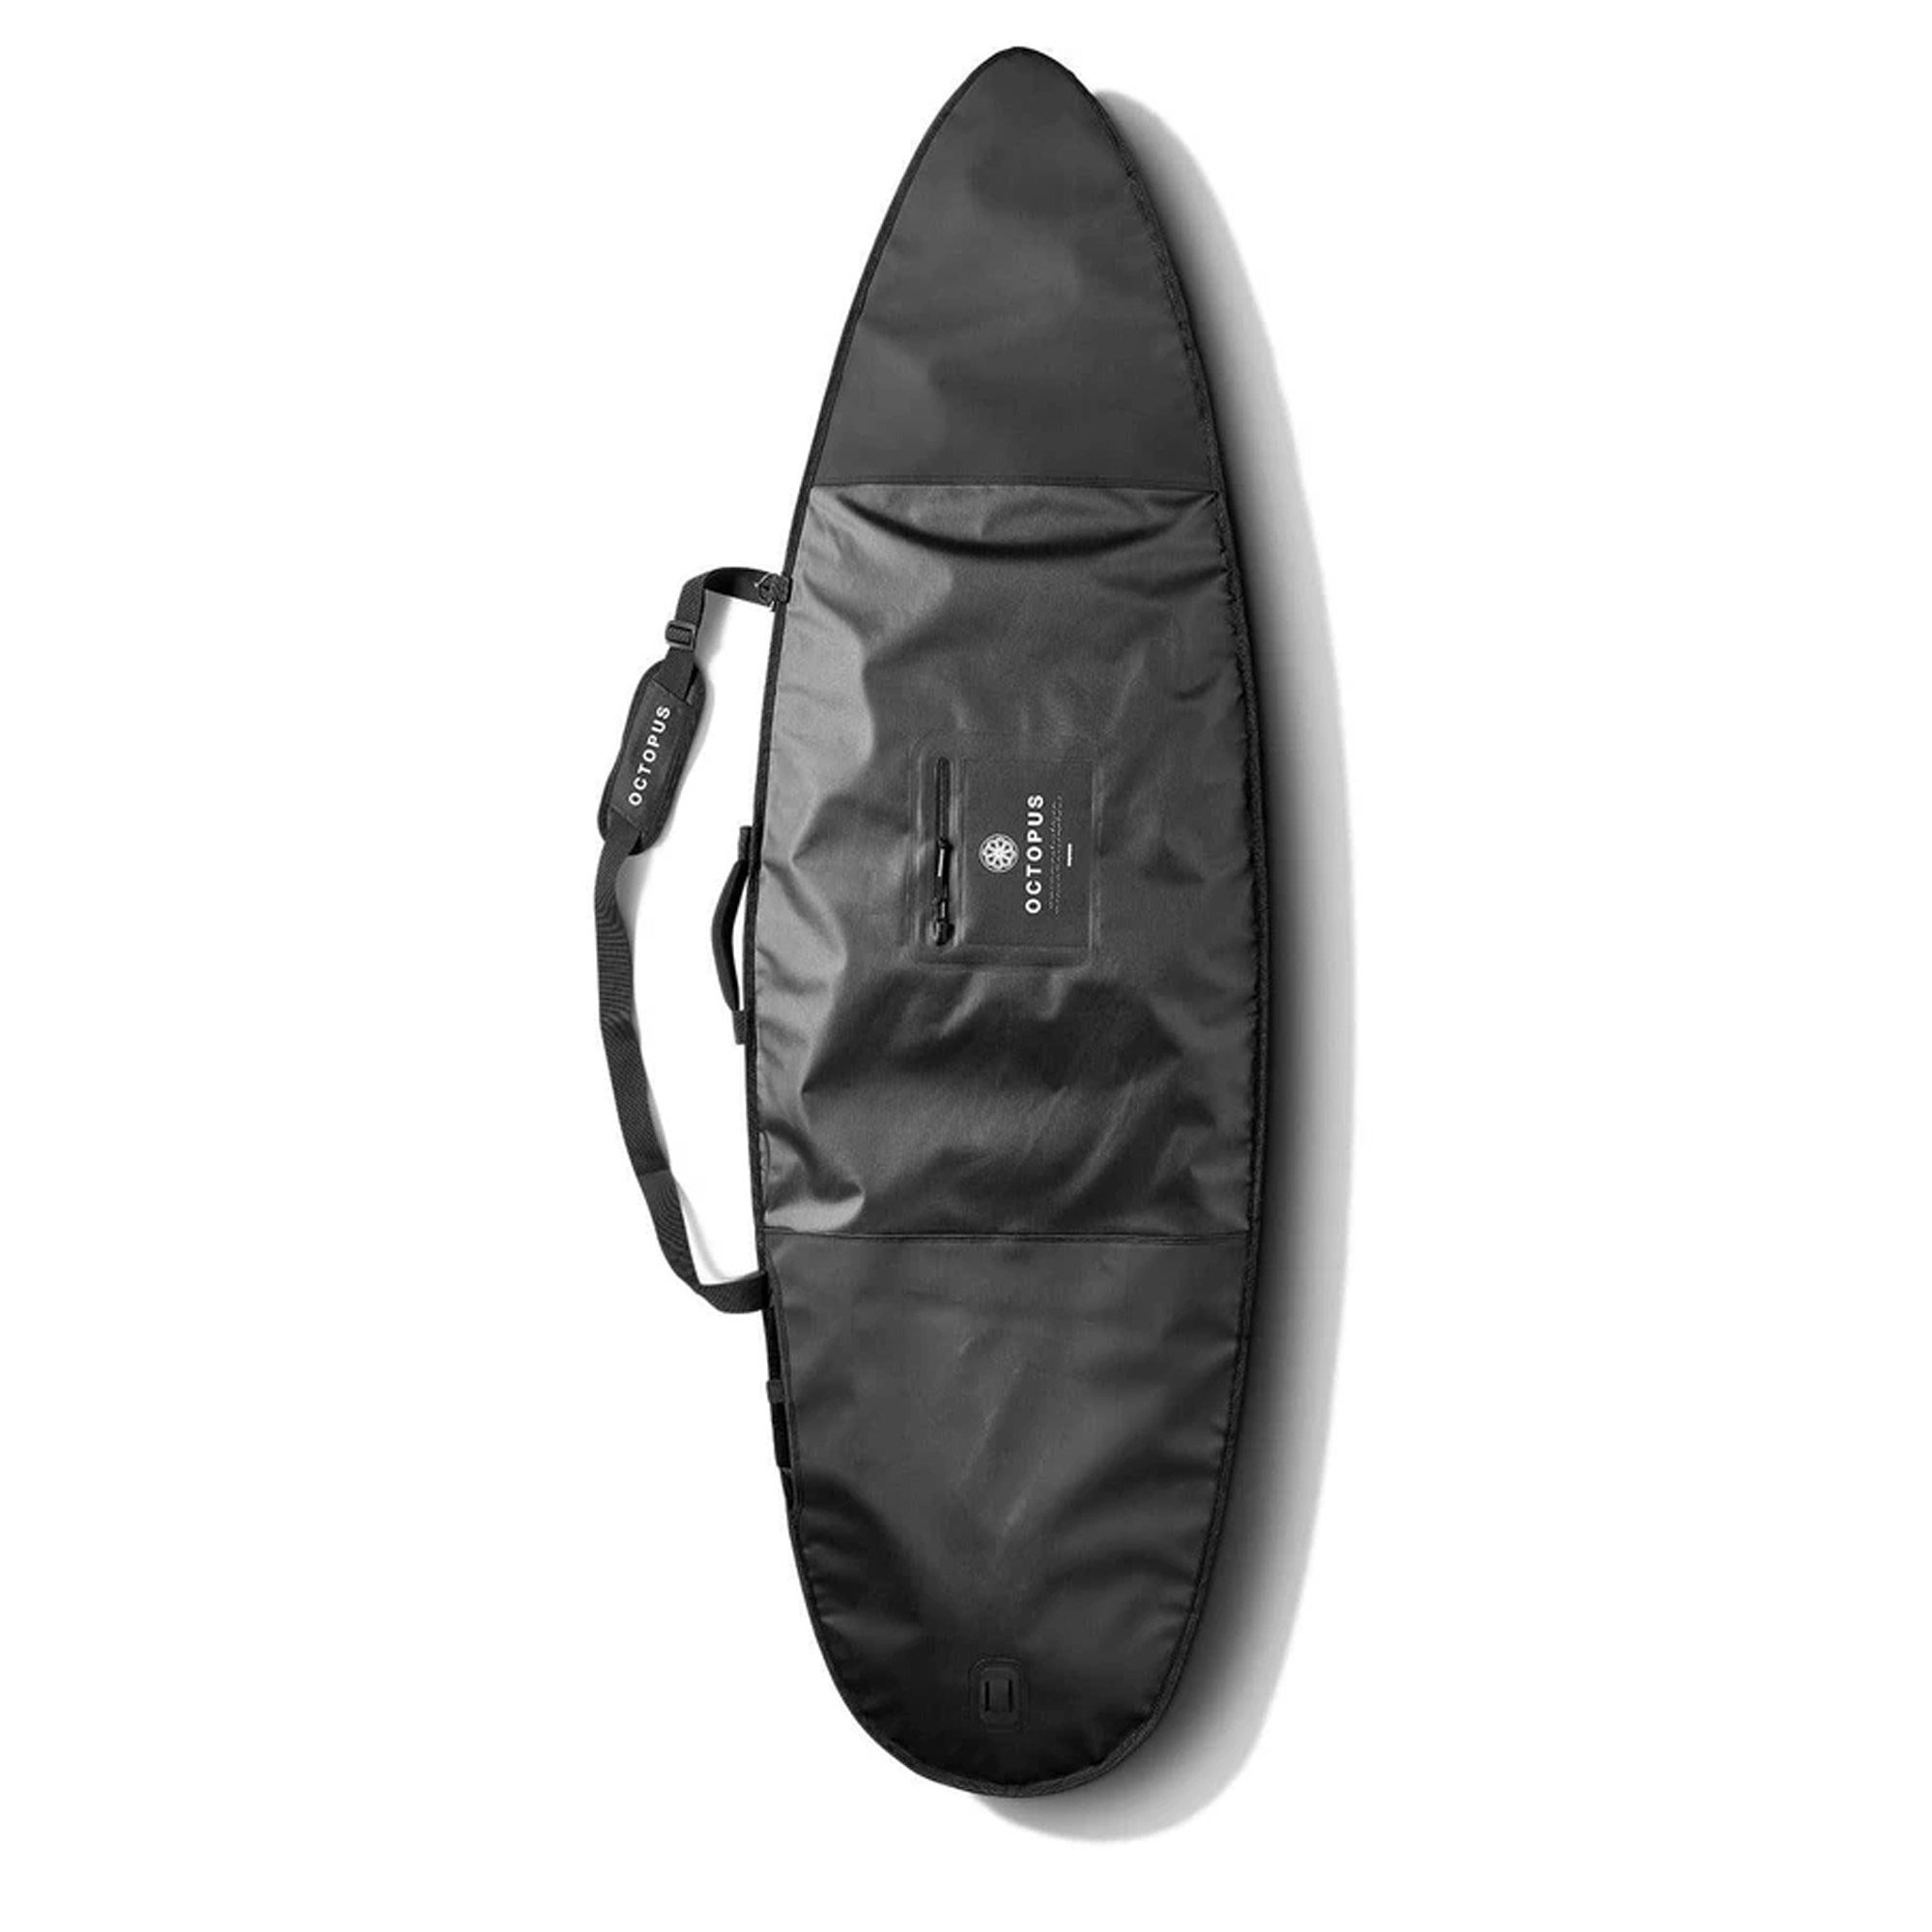 Octopus WREBB Surfboard Bag